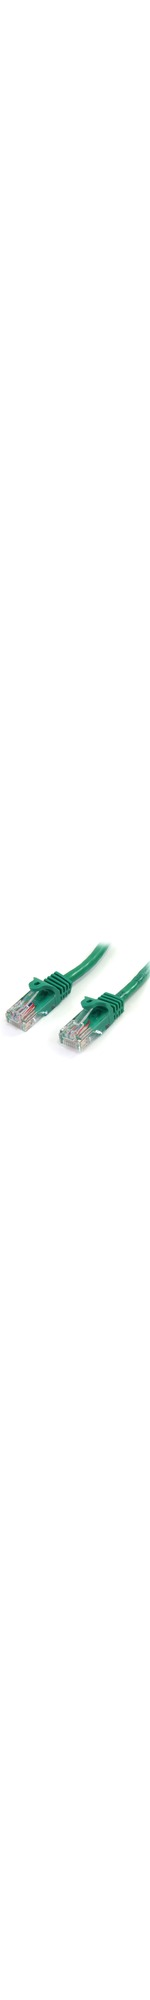 StarTech.com 2 m Green Cat5e Snagless RJ45 UTP Patch Cable - 2m Patch Cord - 1 x RJ-45 Male Network